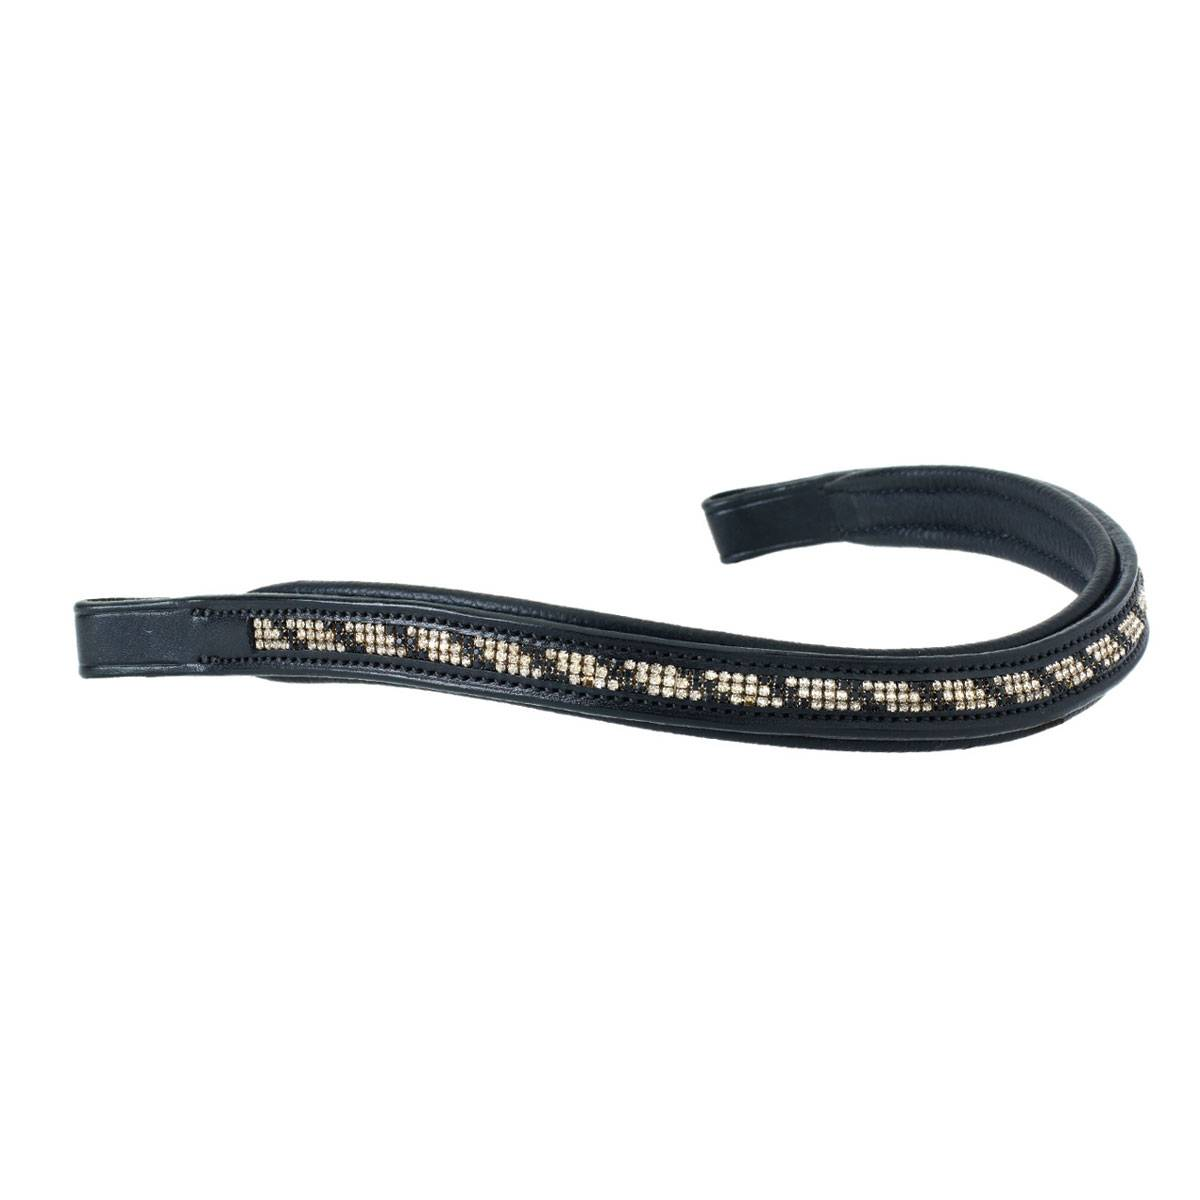 Ovation Alexia Shaped Browband